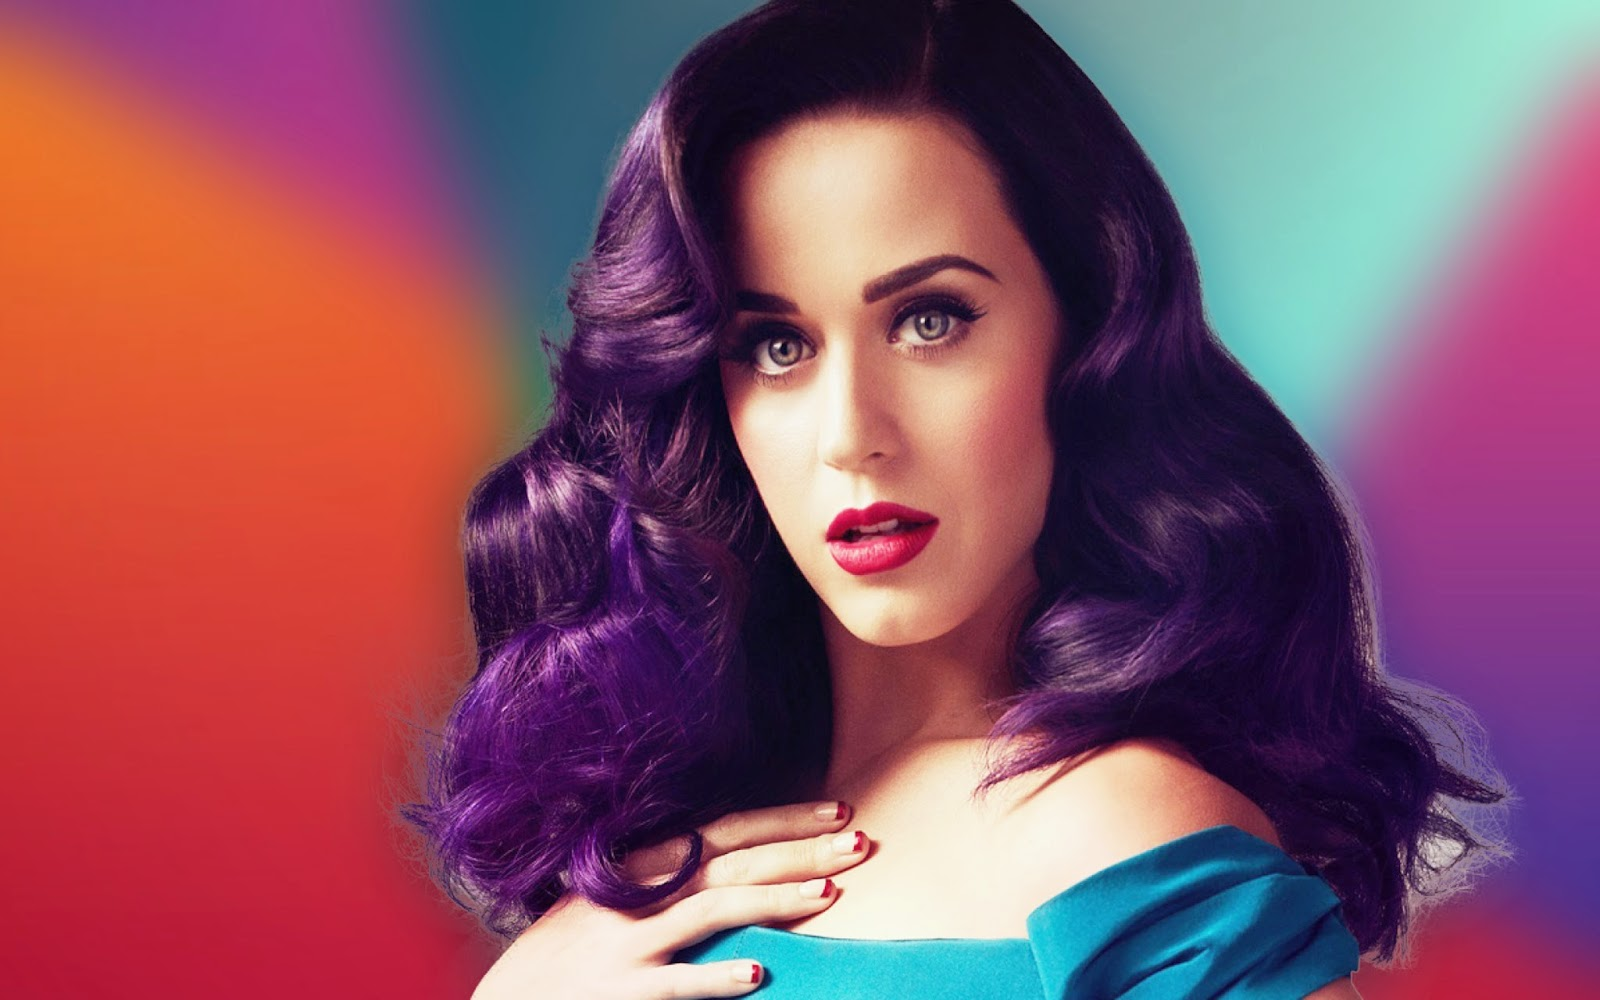 Katty Perry Wallpapers Colorful